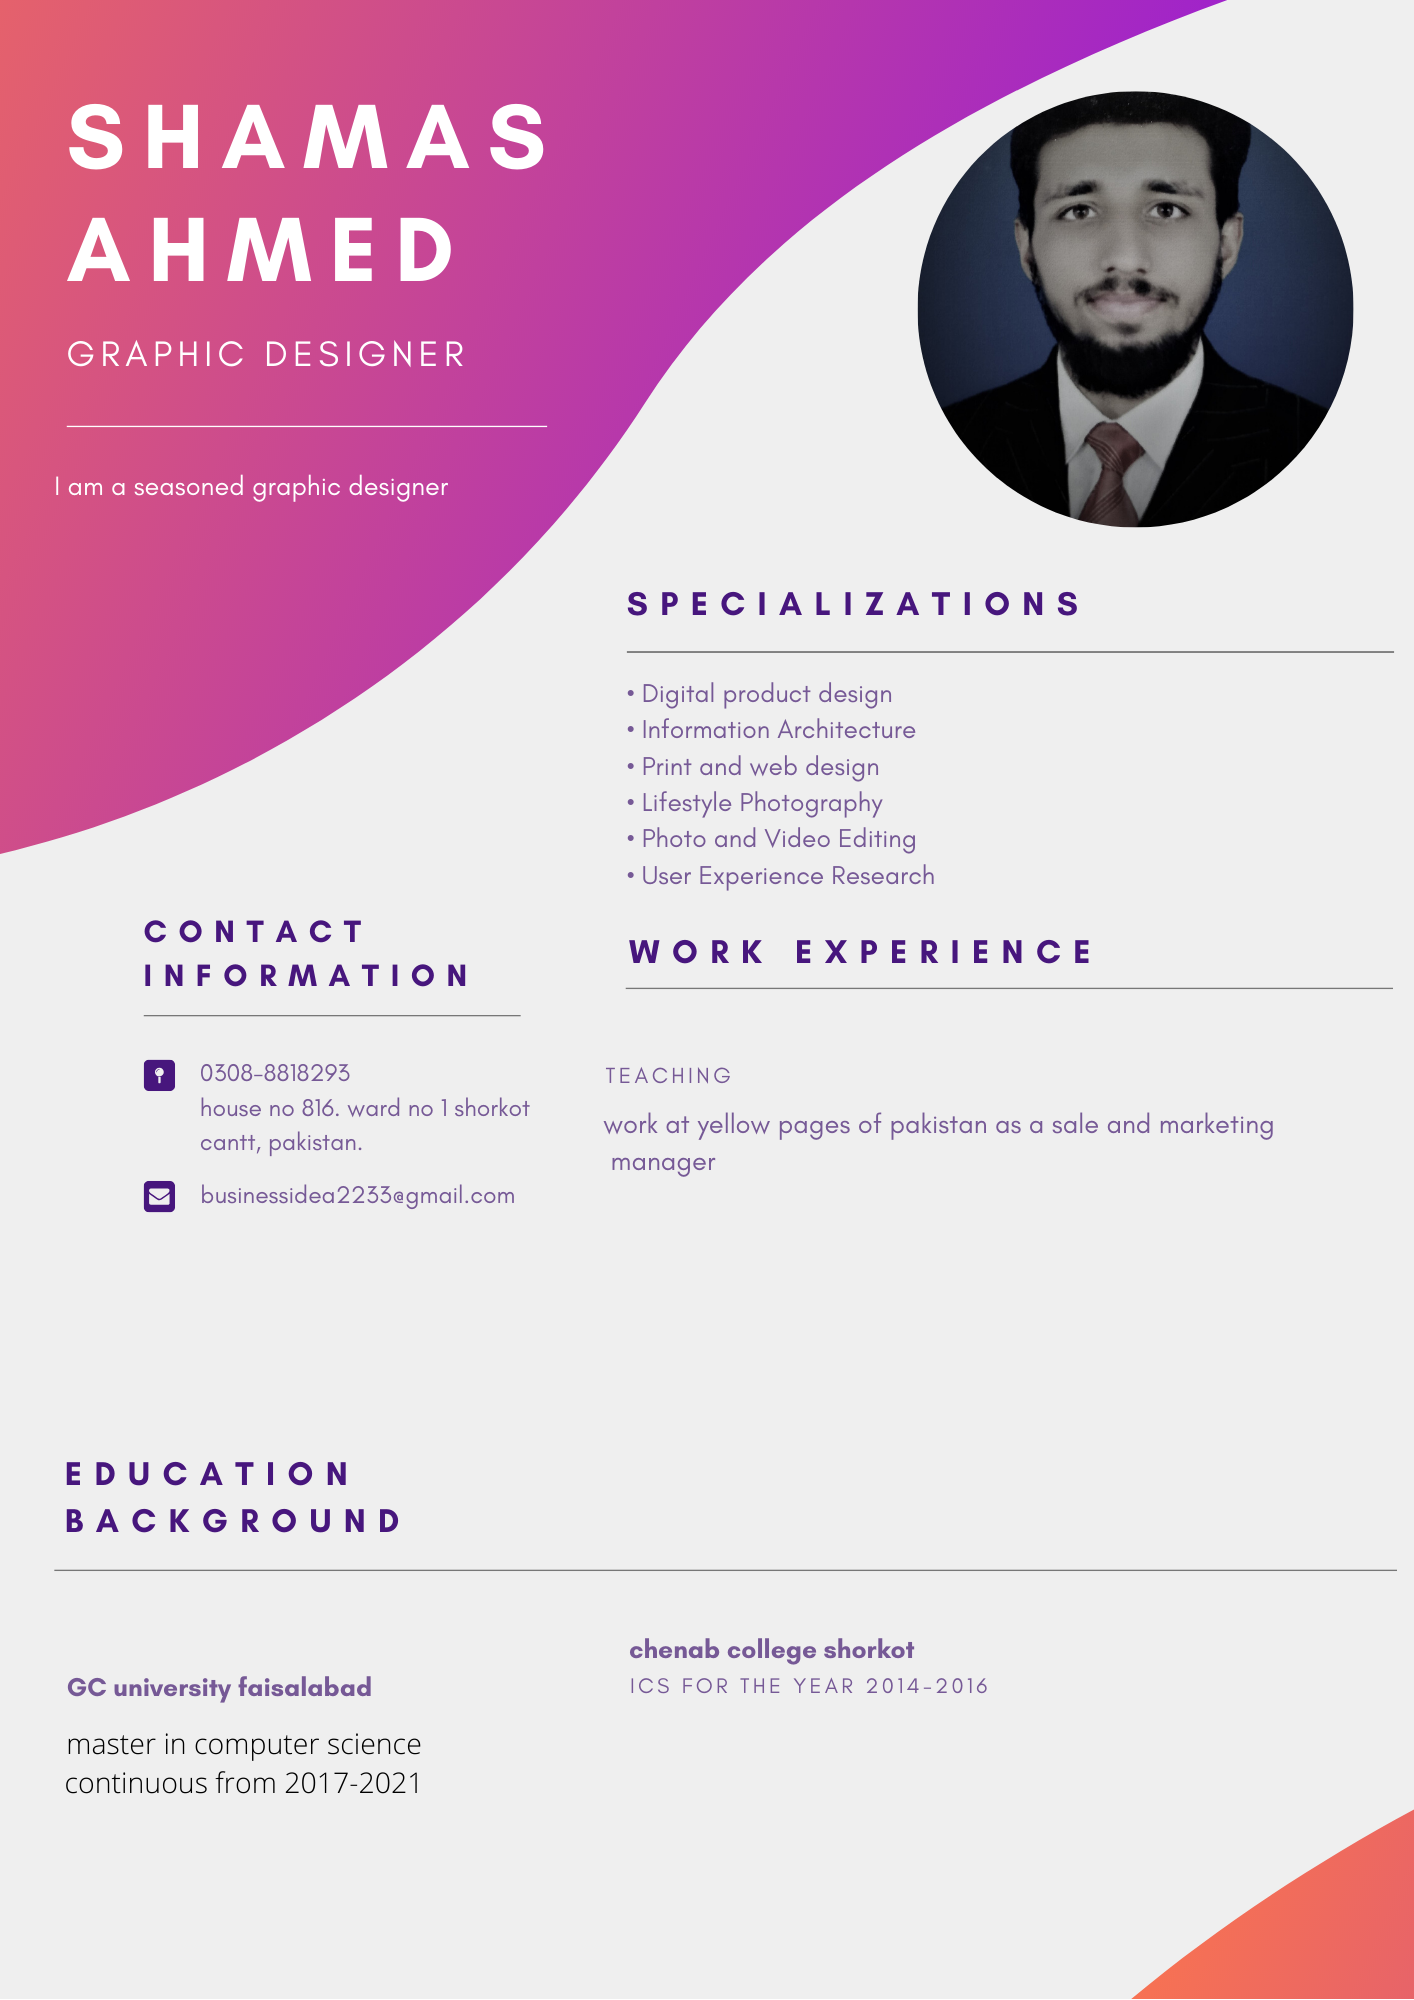 I will provide professional resume writing service and professional resume design